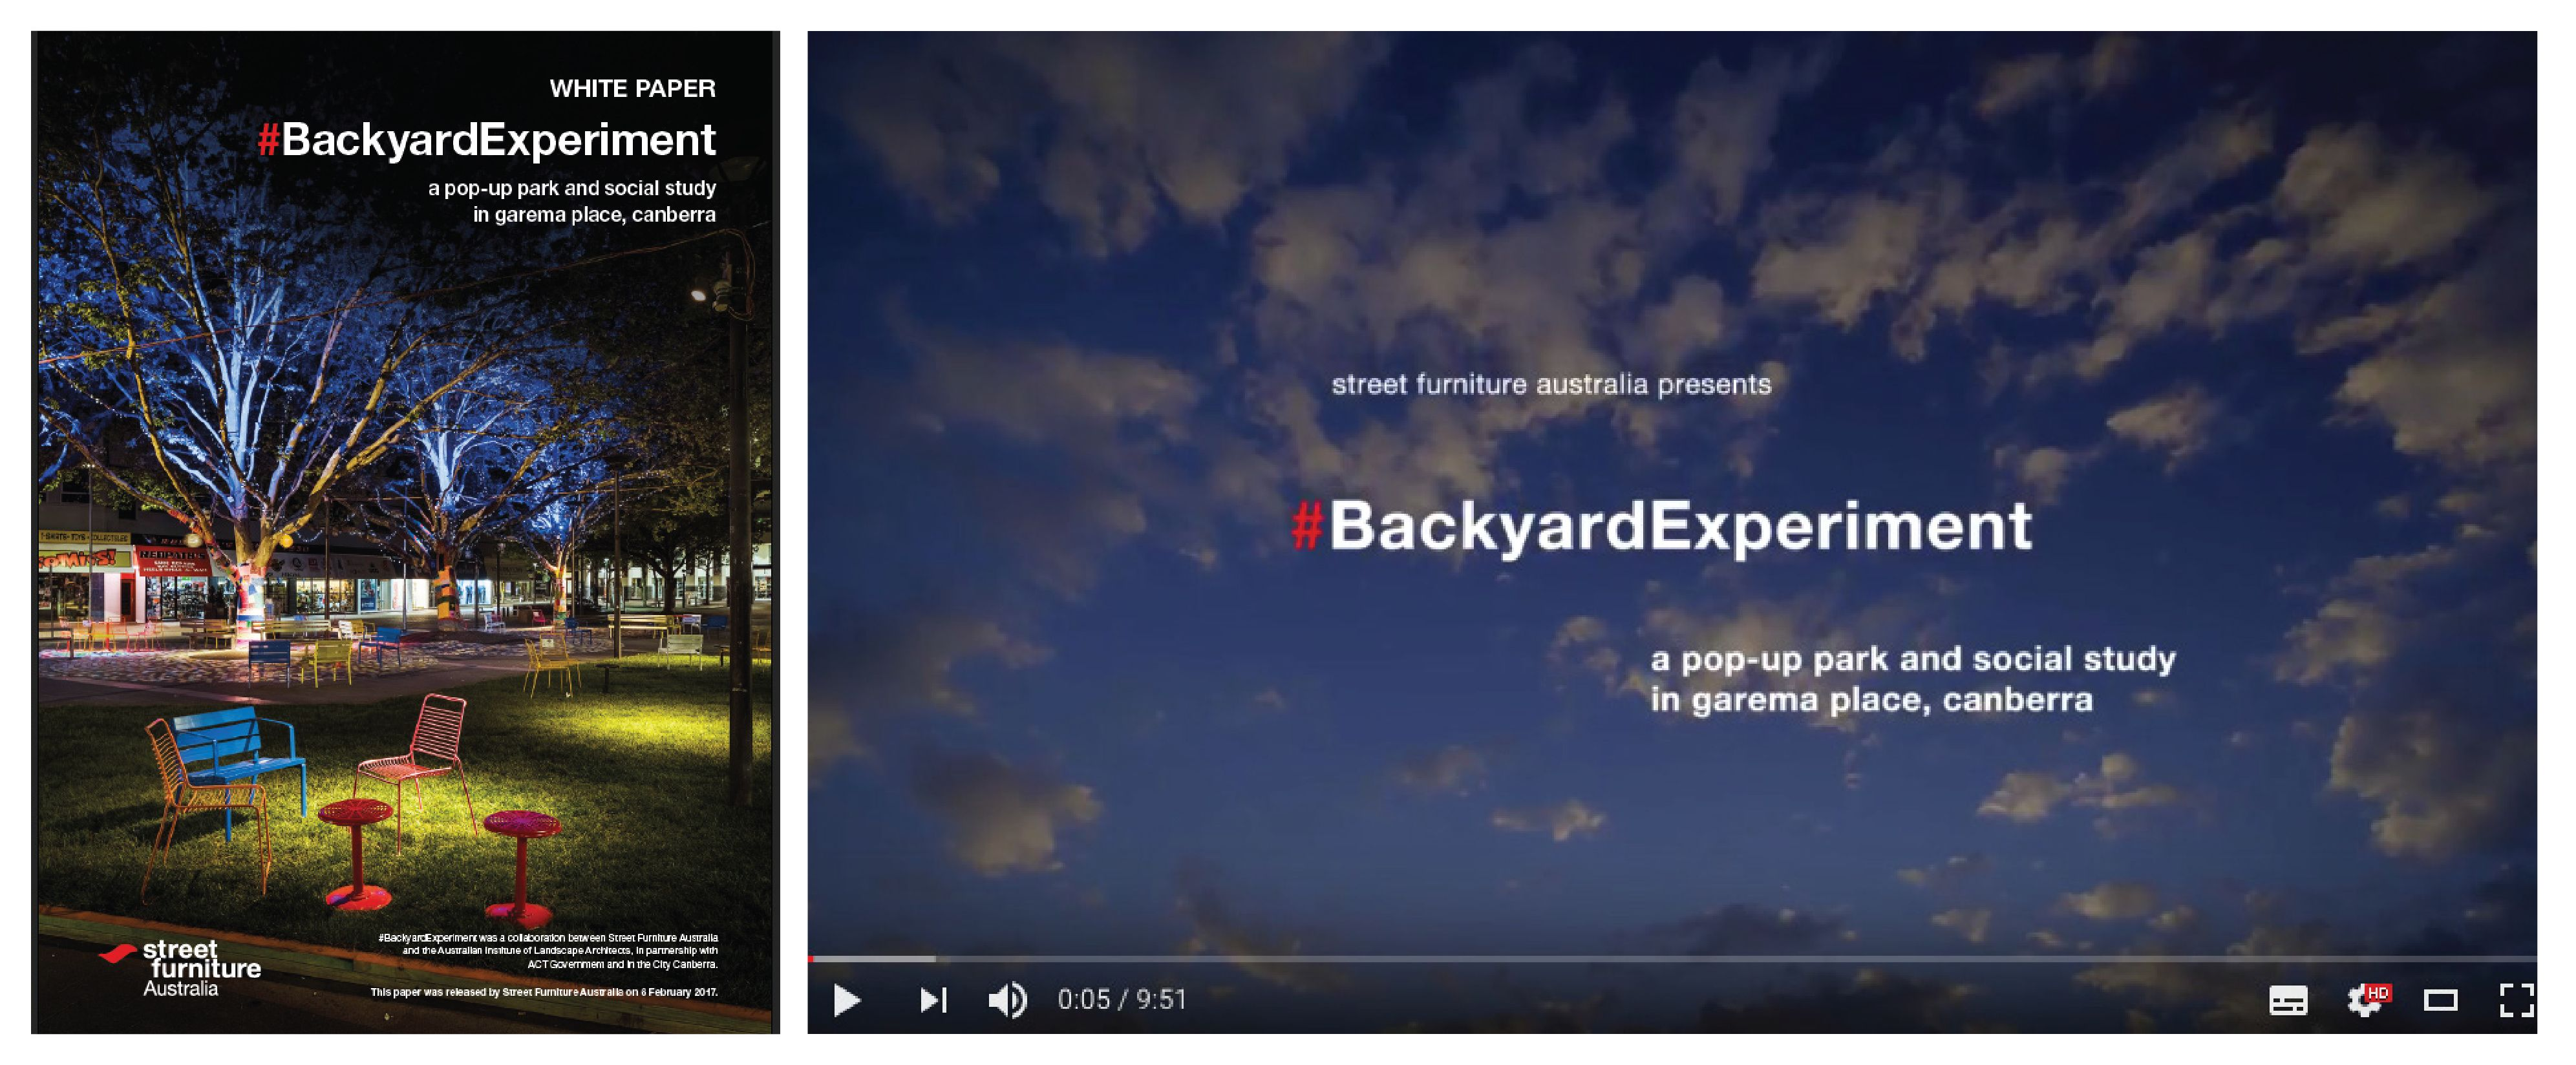 Backyard Experiment White Paper and Video